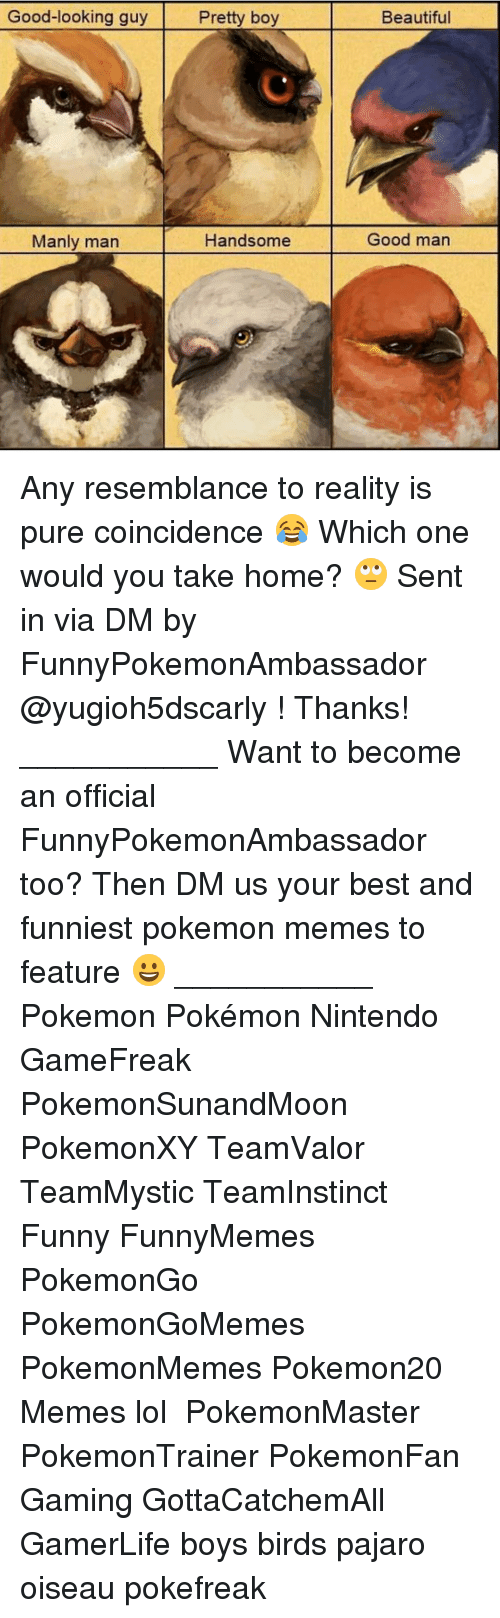 Pretty Boy: Good-looking guy  Pretty boy  Manly man  Handsome  Beautiful  Good man Any resemblance to reality is pure coincidence 😂 Which one would you take home? 🙄 Sent in via DM by FunnyPokemonAmbassador @yugioh5dscarly ! Thanks! ___________ Want to become an official FunnyPokemonAmbassador too? Then DM us your best and funniest pokemon memes to feature 😀 ___________ Pokemon Pokémon Nintendo GameFreak PokemonSunandMoon PokemonXY TeamValor TeamMystic TeamInstinct Funny FunnyMemes PokemonGo PokemonGoMemes PokemonMemes Pokemon20 Memes lol ポケットモンスター PokemonMaster PokemonTrainer PokemonFan Gaming GottaCatchemAll GamerLife boys birds pajaro oiseau pokefreak